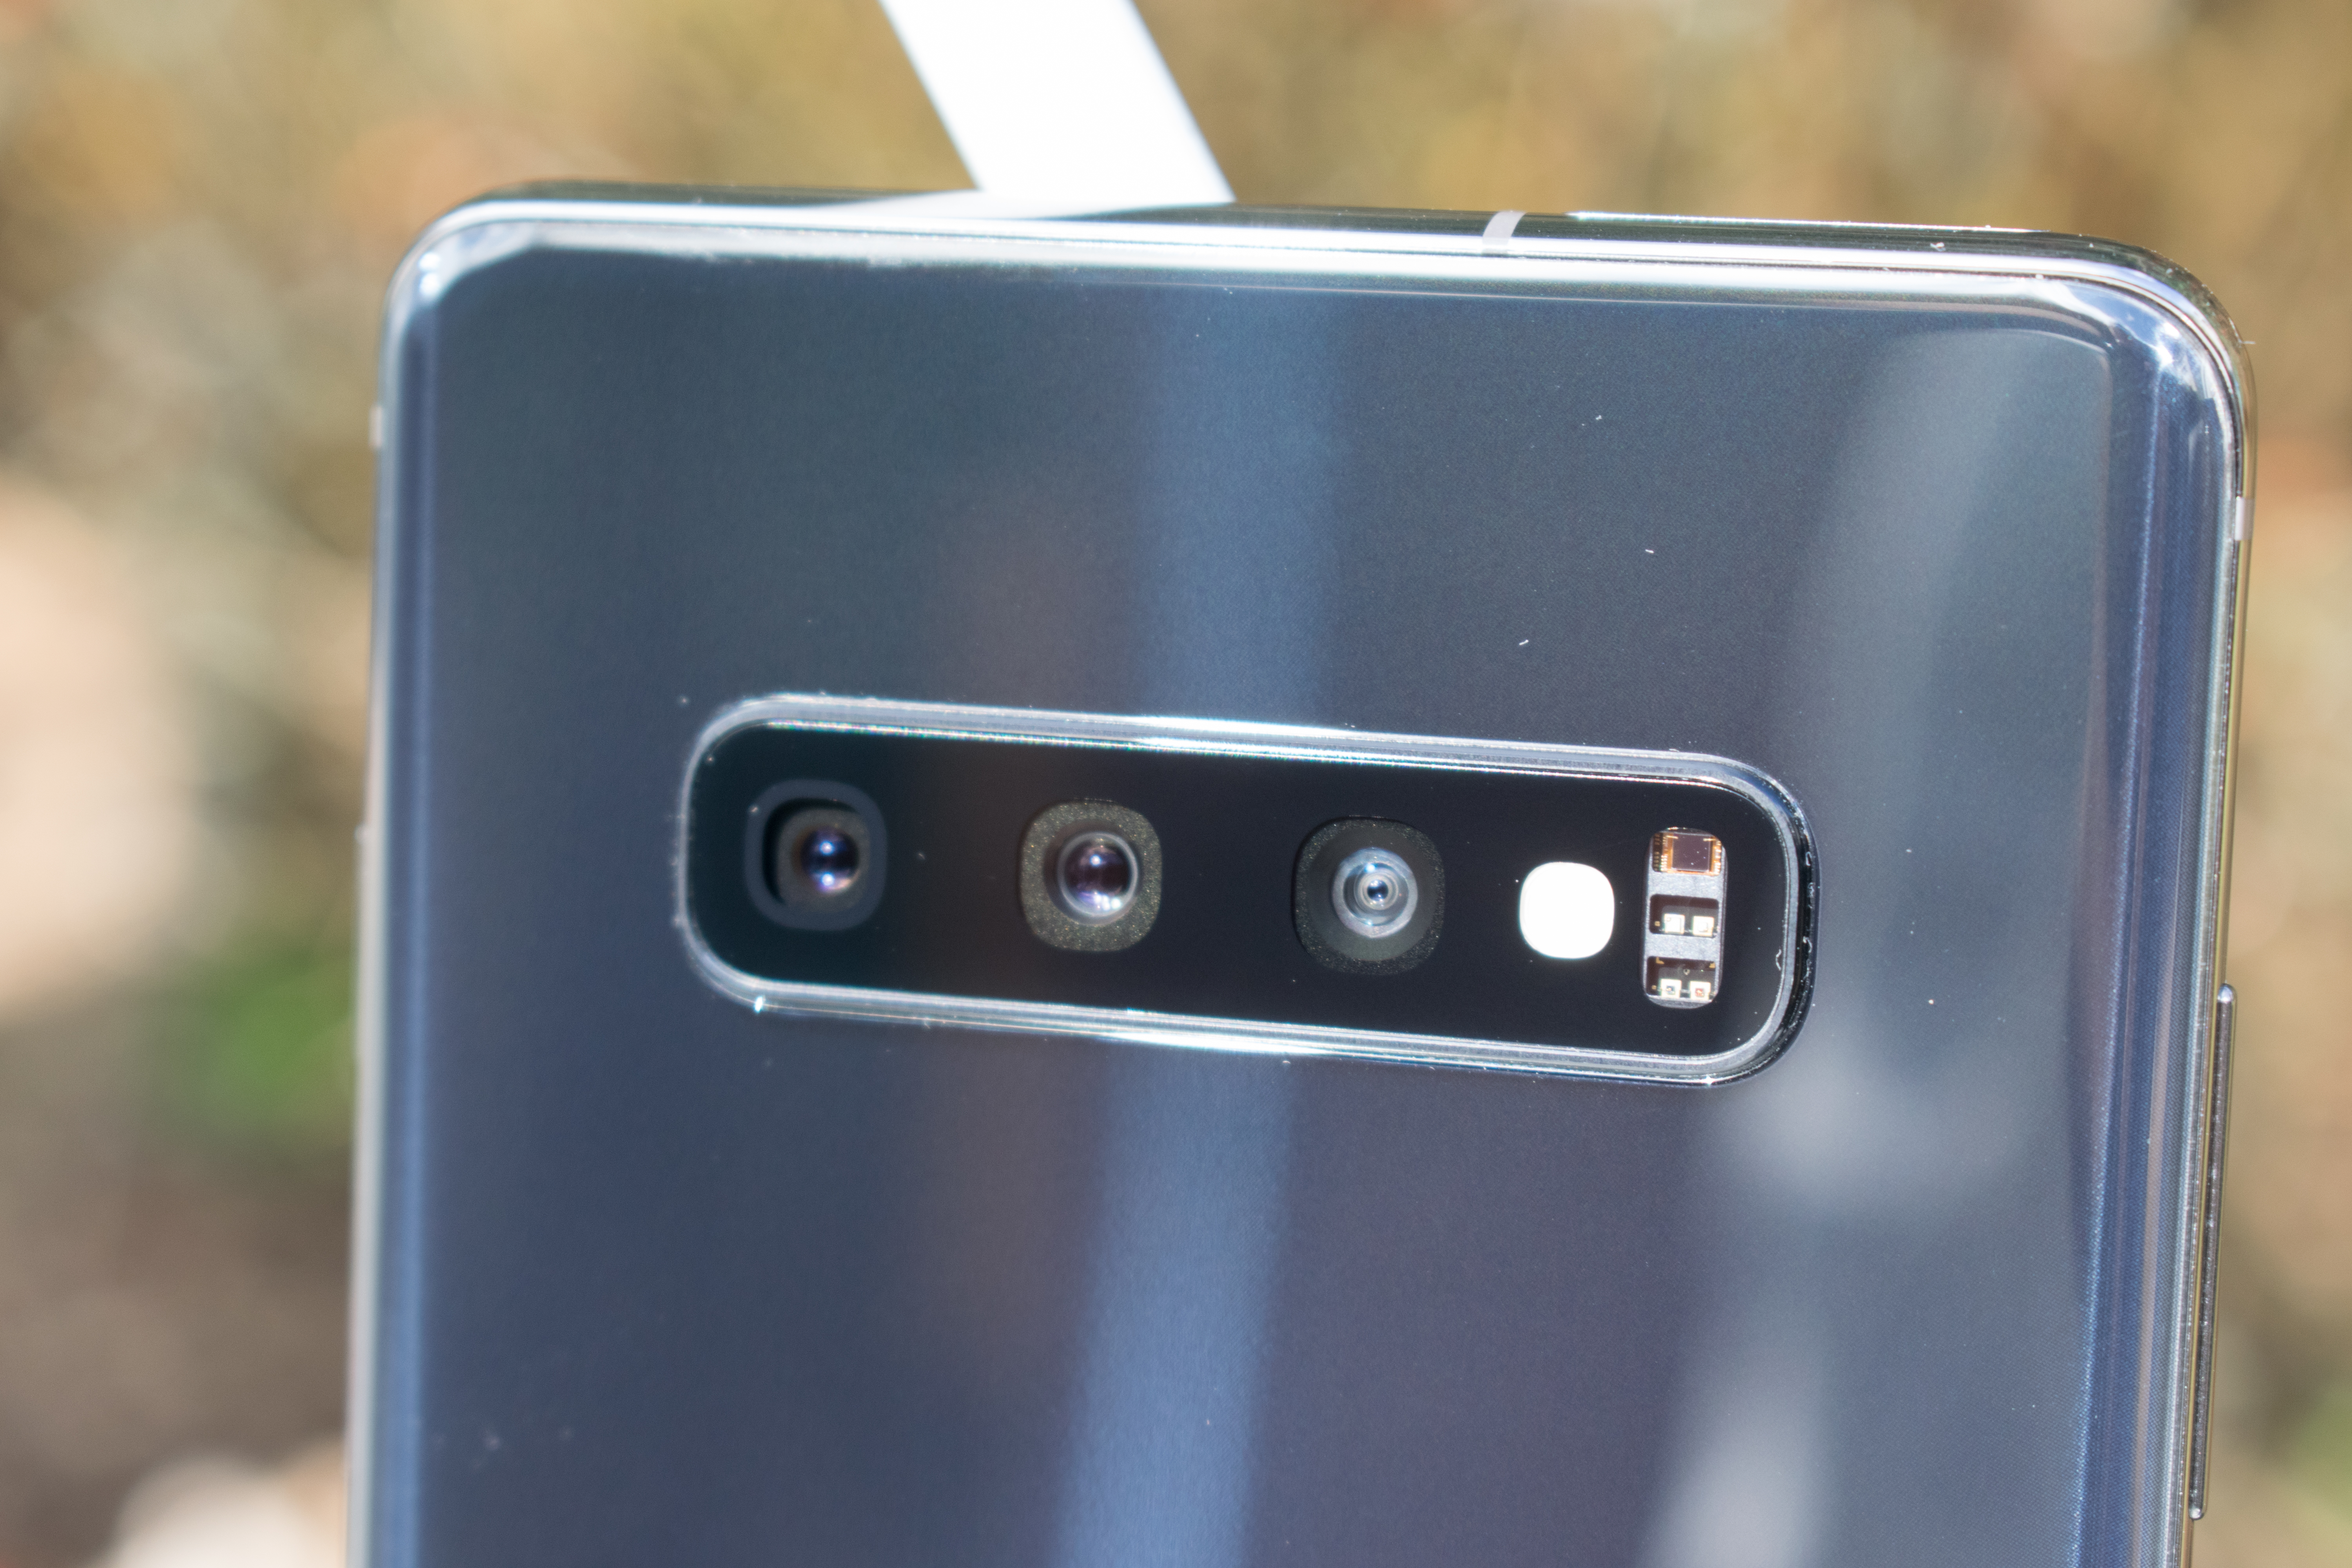 The Samsung Galaxy S10+ Snapdragon & Exynos Review: Almost